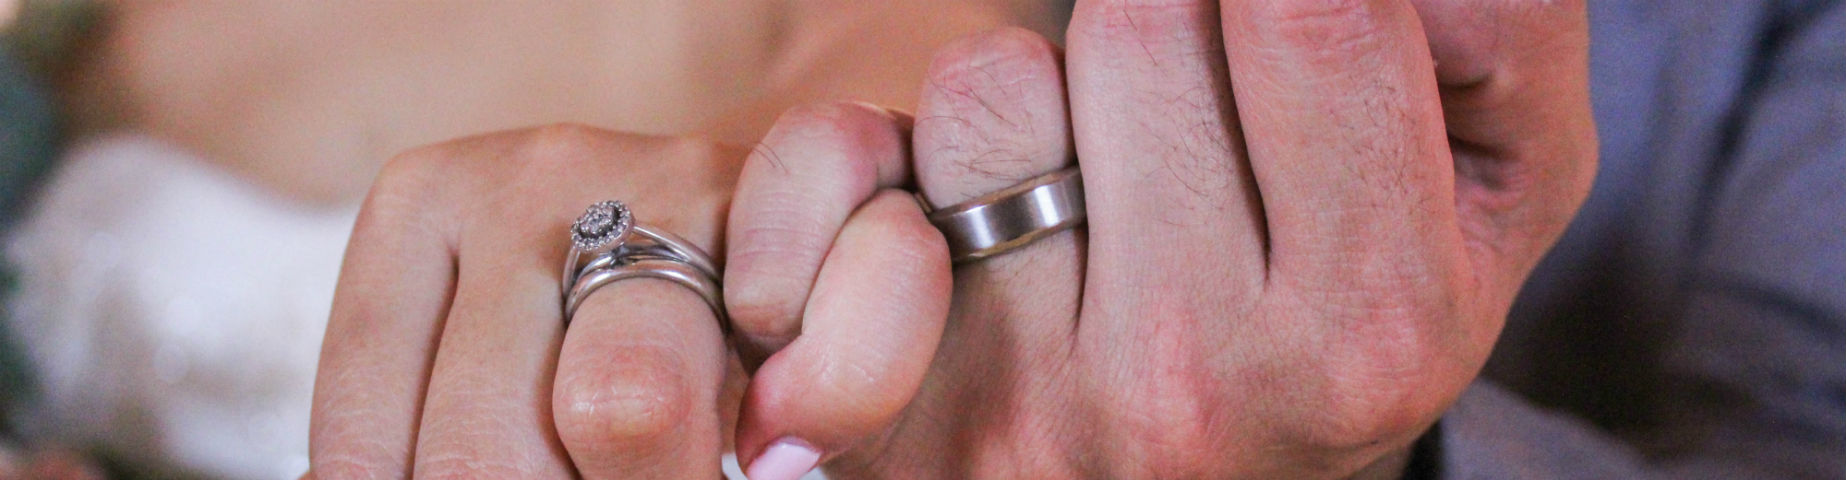 couple linking pinkies woman wearing halo engagement ring